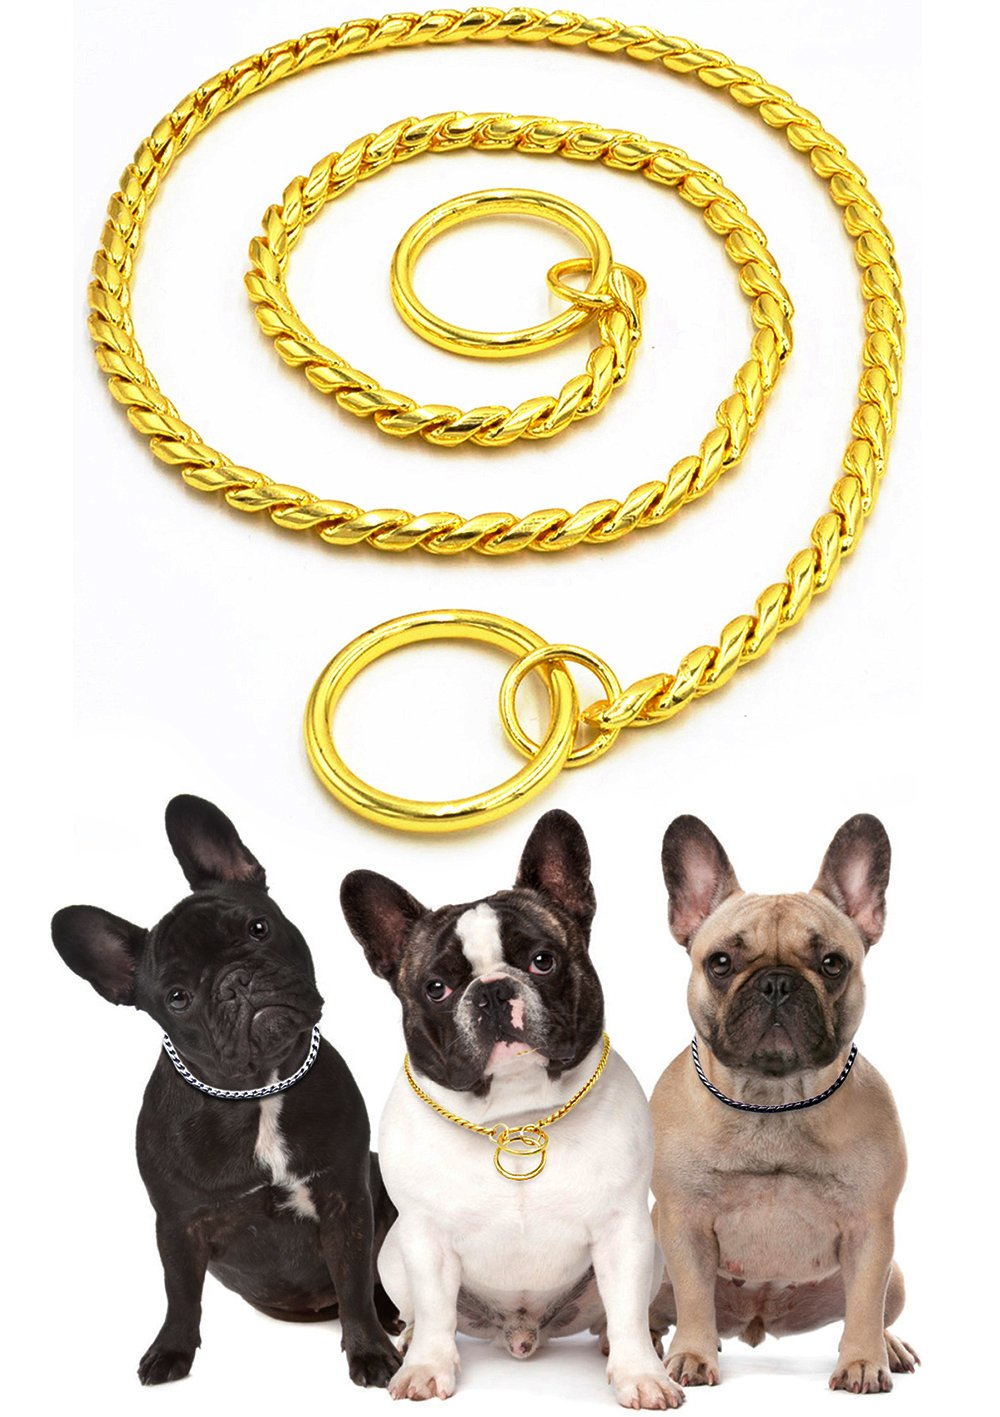 gold M Length  20\ gold M Length  20\ Freezx Dog Choke Collars Training Snake P Chain Adjustable Heavy Duty Pure Copper Choke P Snake Chain Collars Best for Small Medium Large Dogs